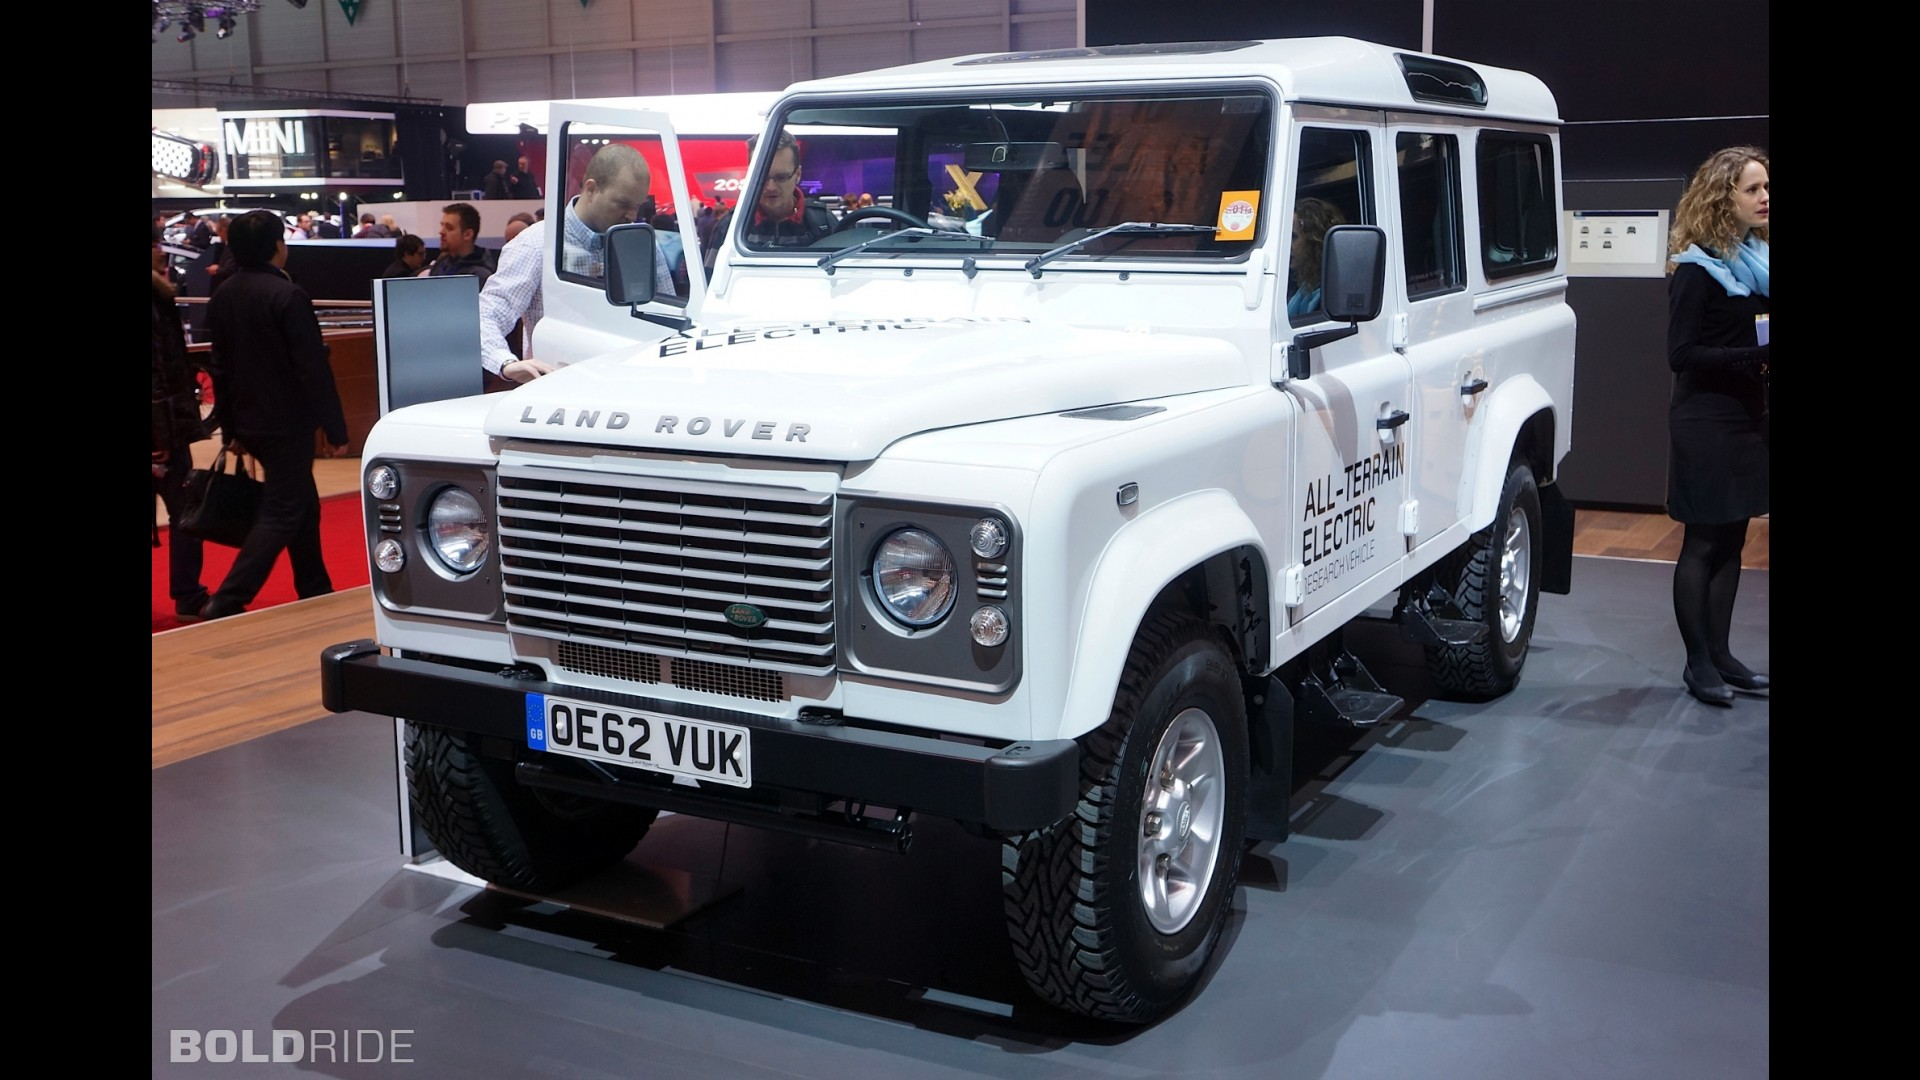 https://icdn-1.motor1.com/images/mgl/26QGz/s1/land-rover-defender-electric-research-vehicle.jpg